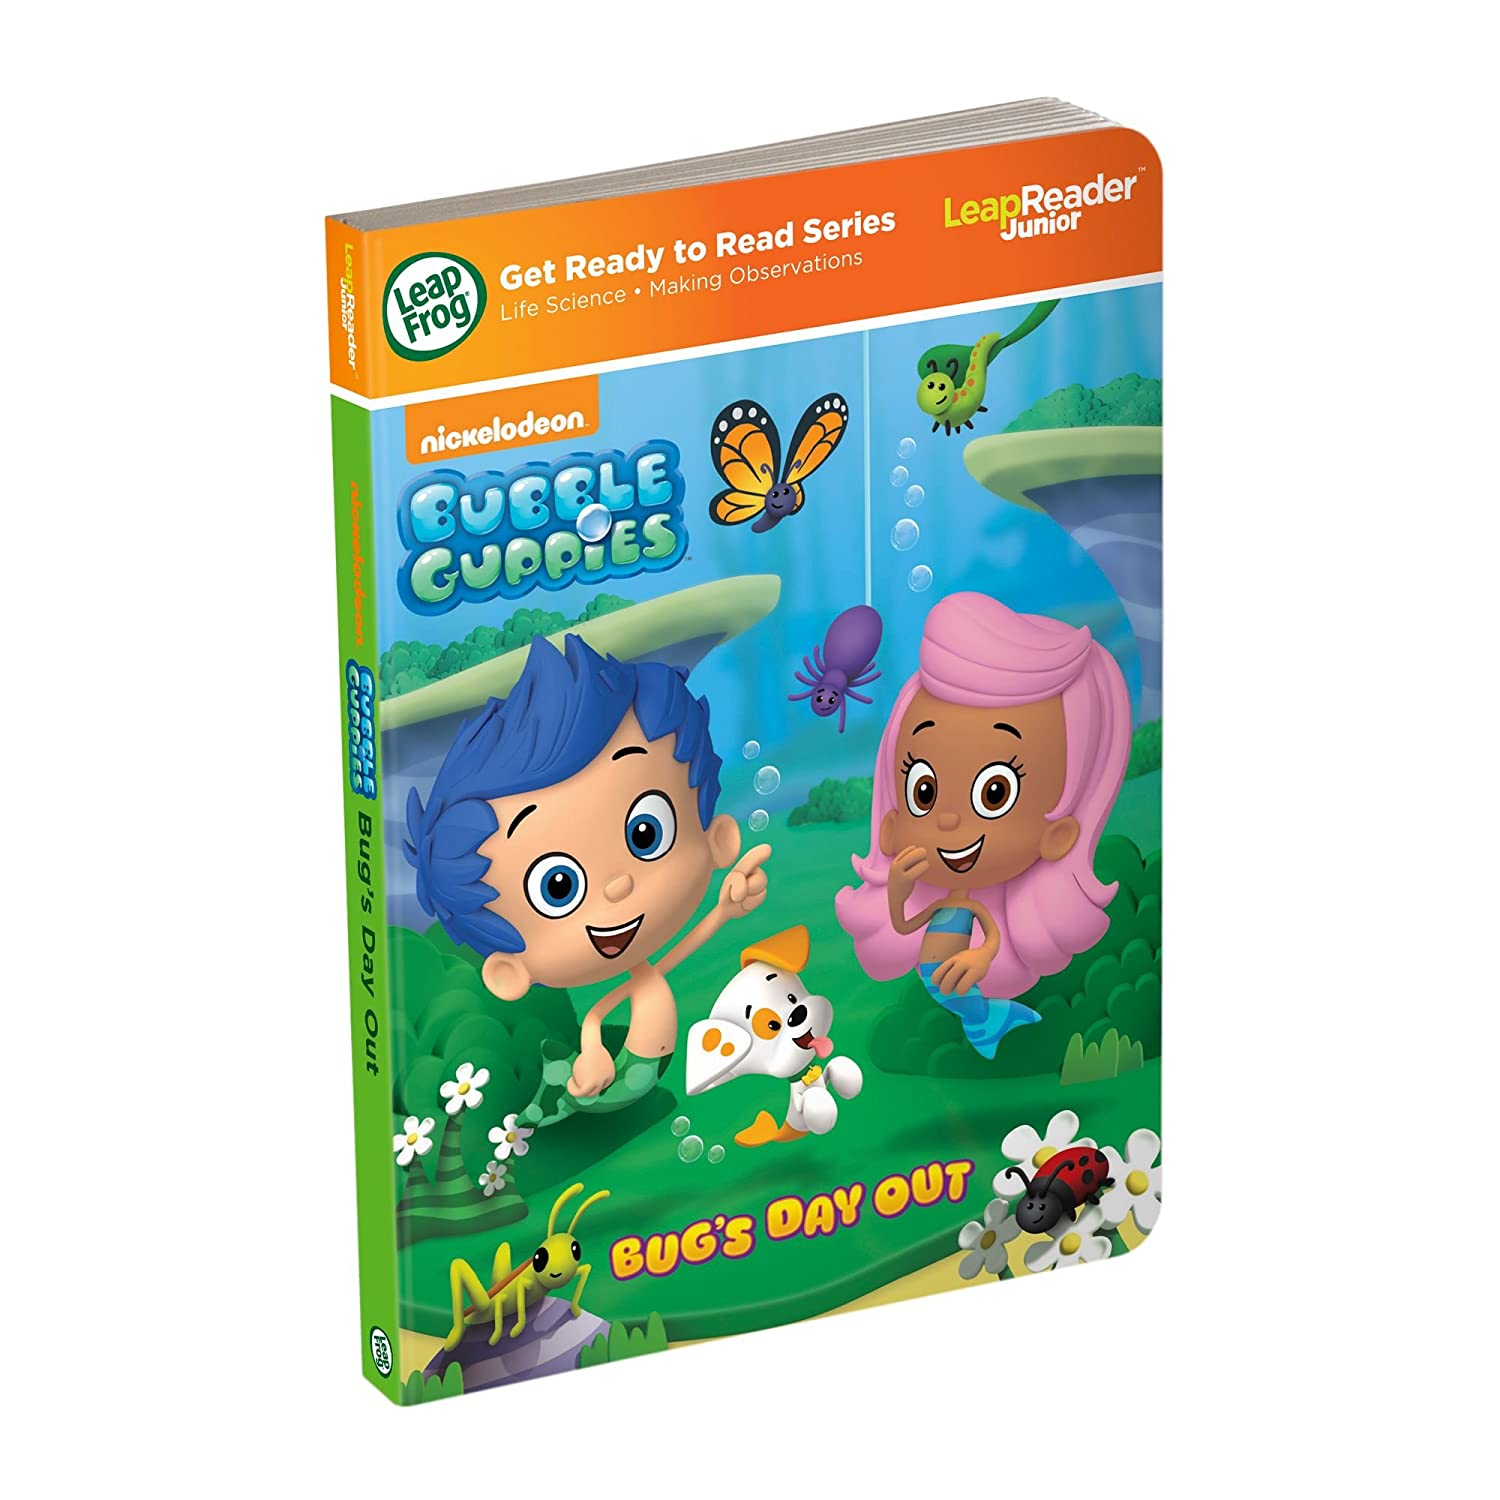 LeapFrog Nickelodeon Bubble Guppies: Bug's Day Out (for LeapReader Junior and Tag Junior) by Bubble Guppies 80-21403E